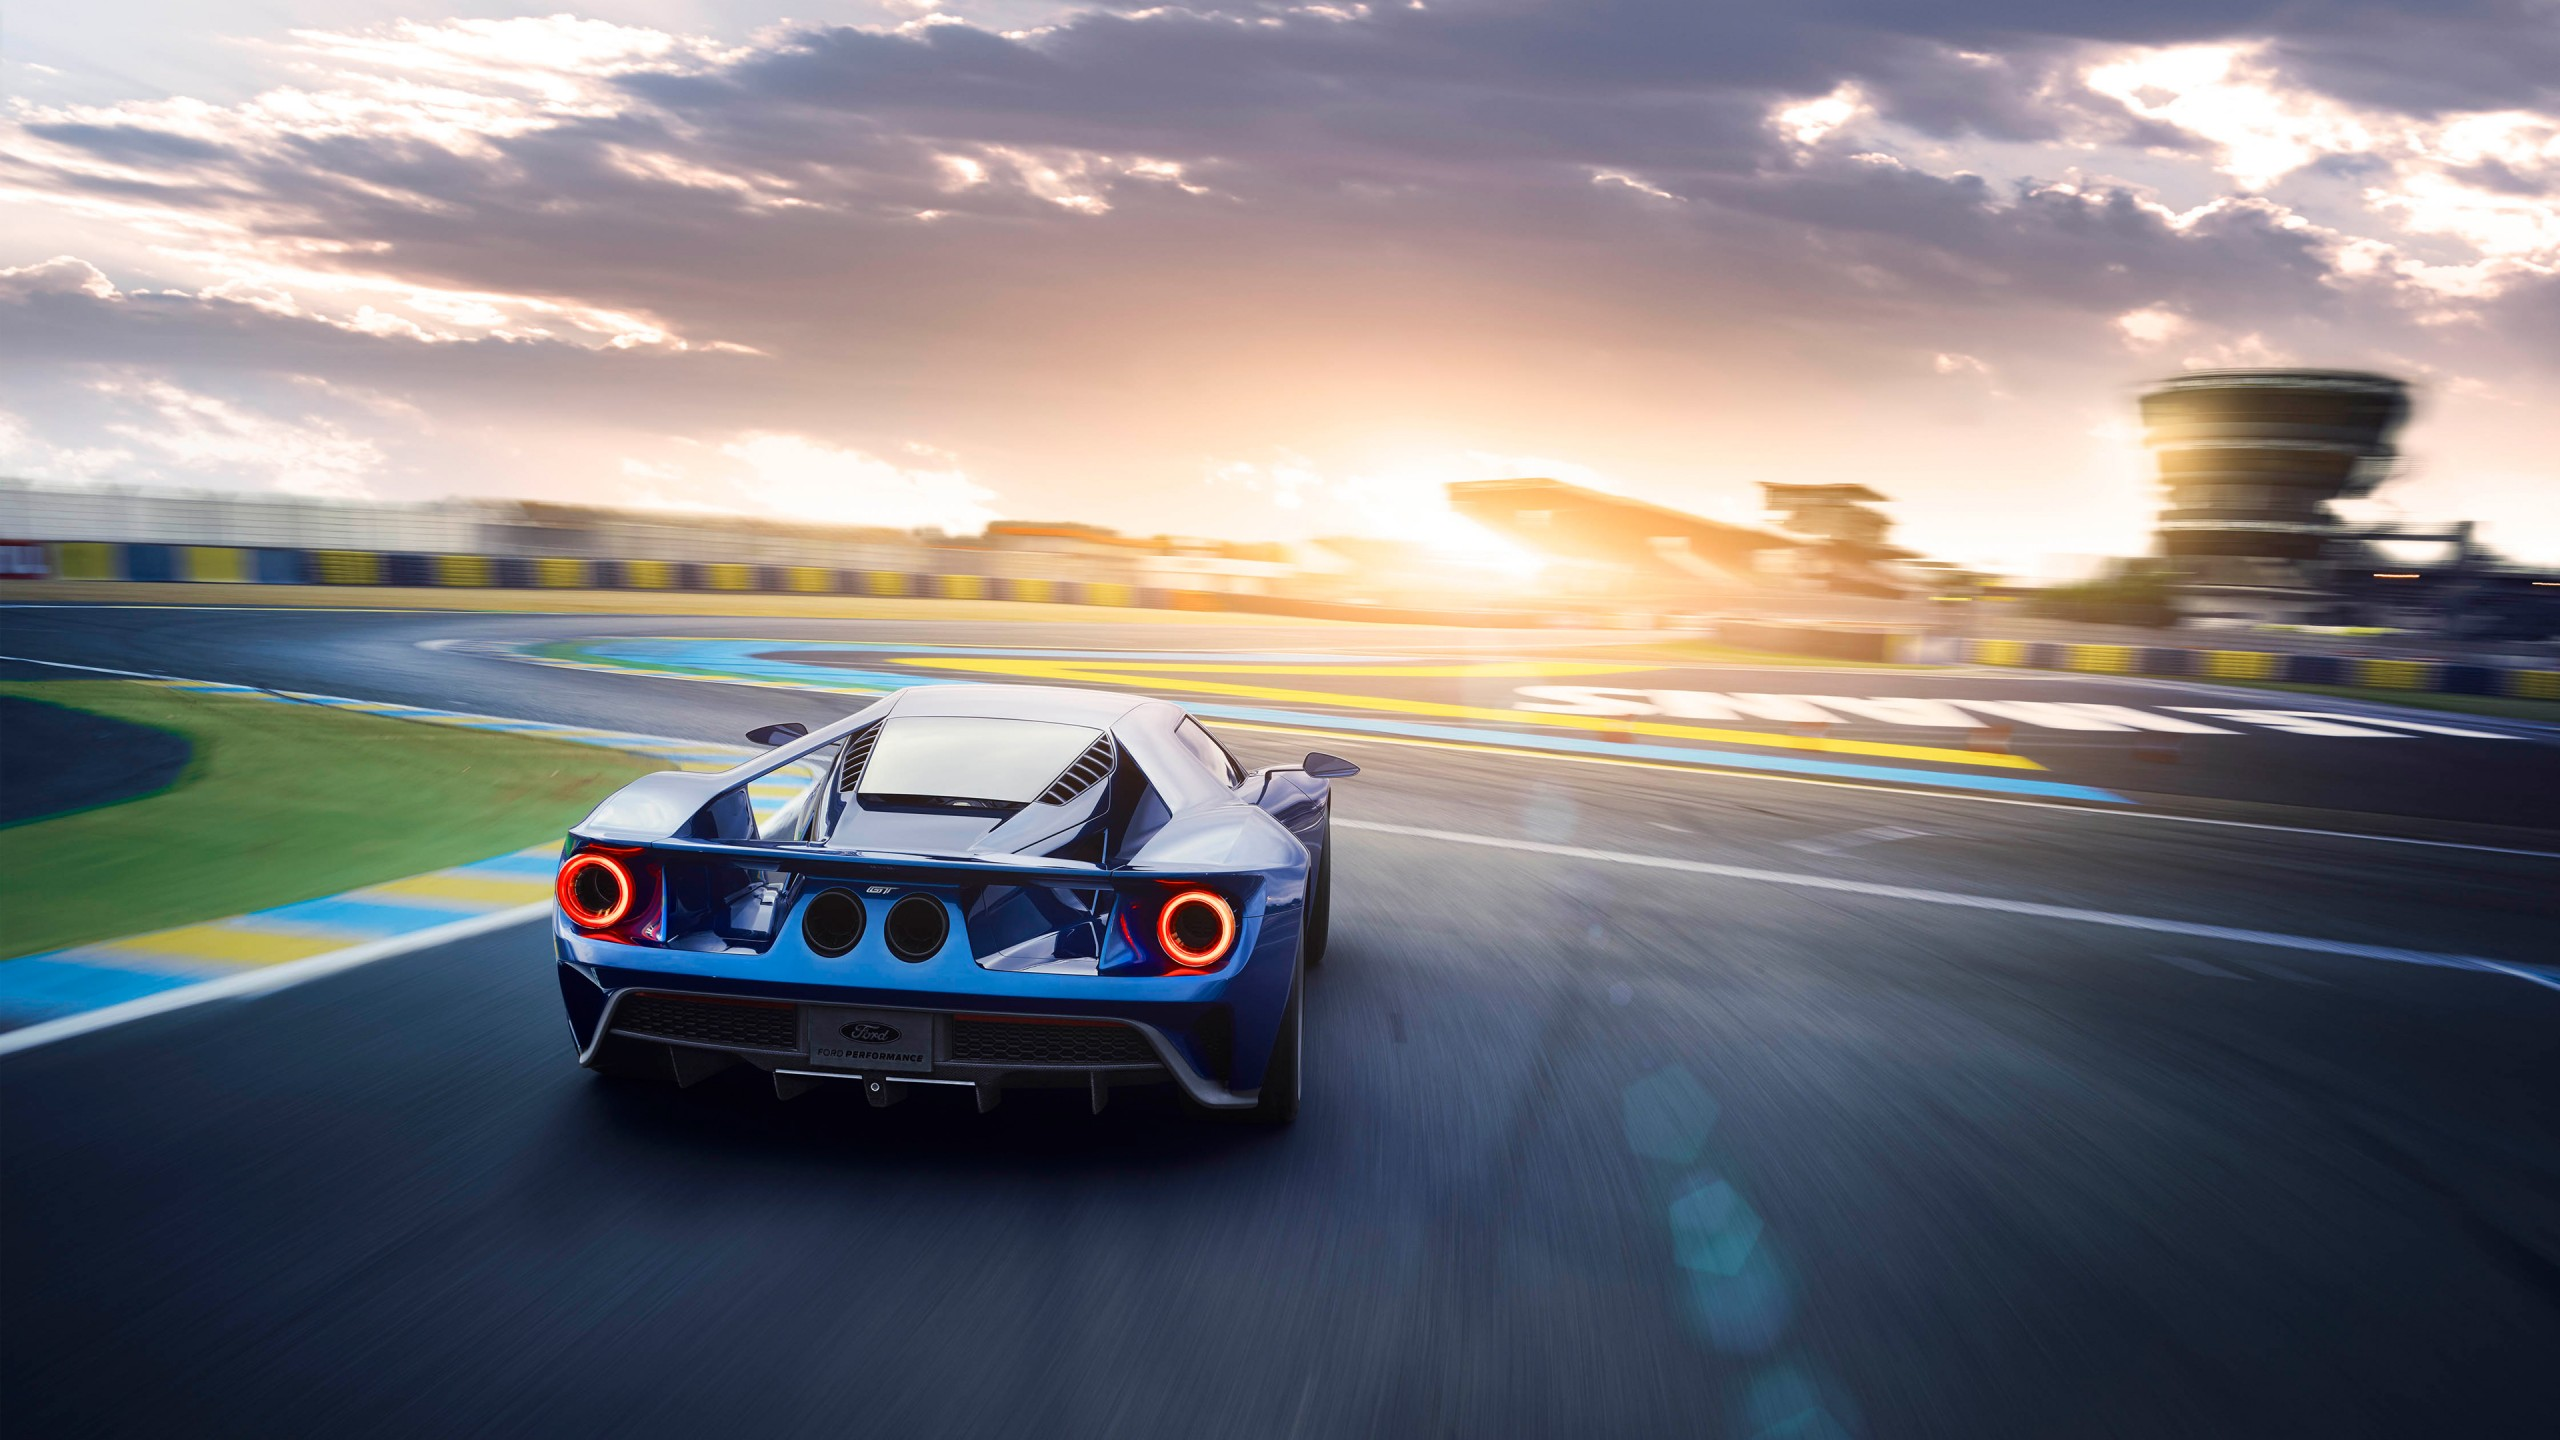 2017 ford gt rear wallpaper hd car wallpapers id 6693 - Wallpaper hd 4k car ...